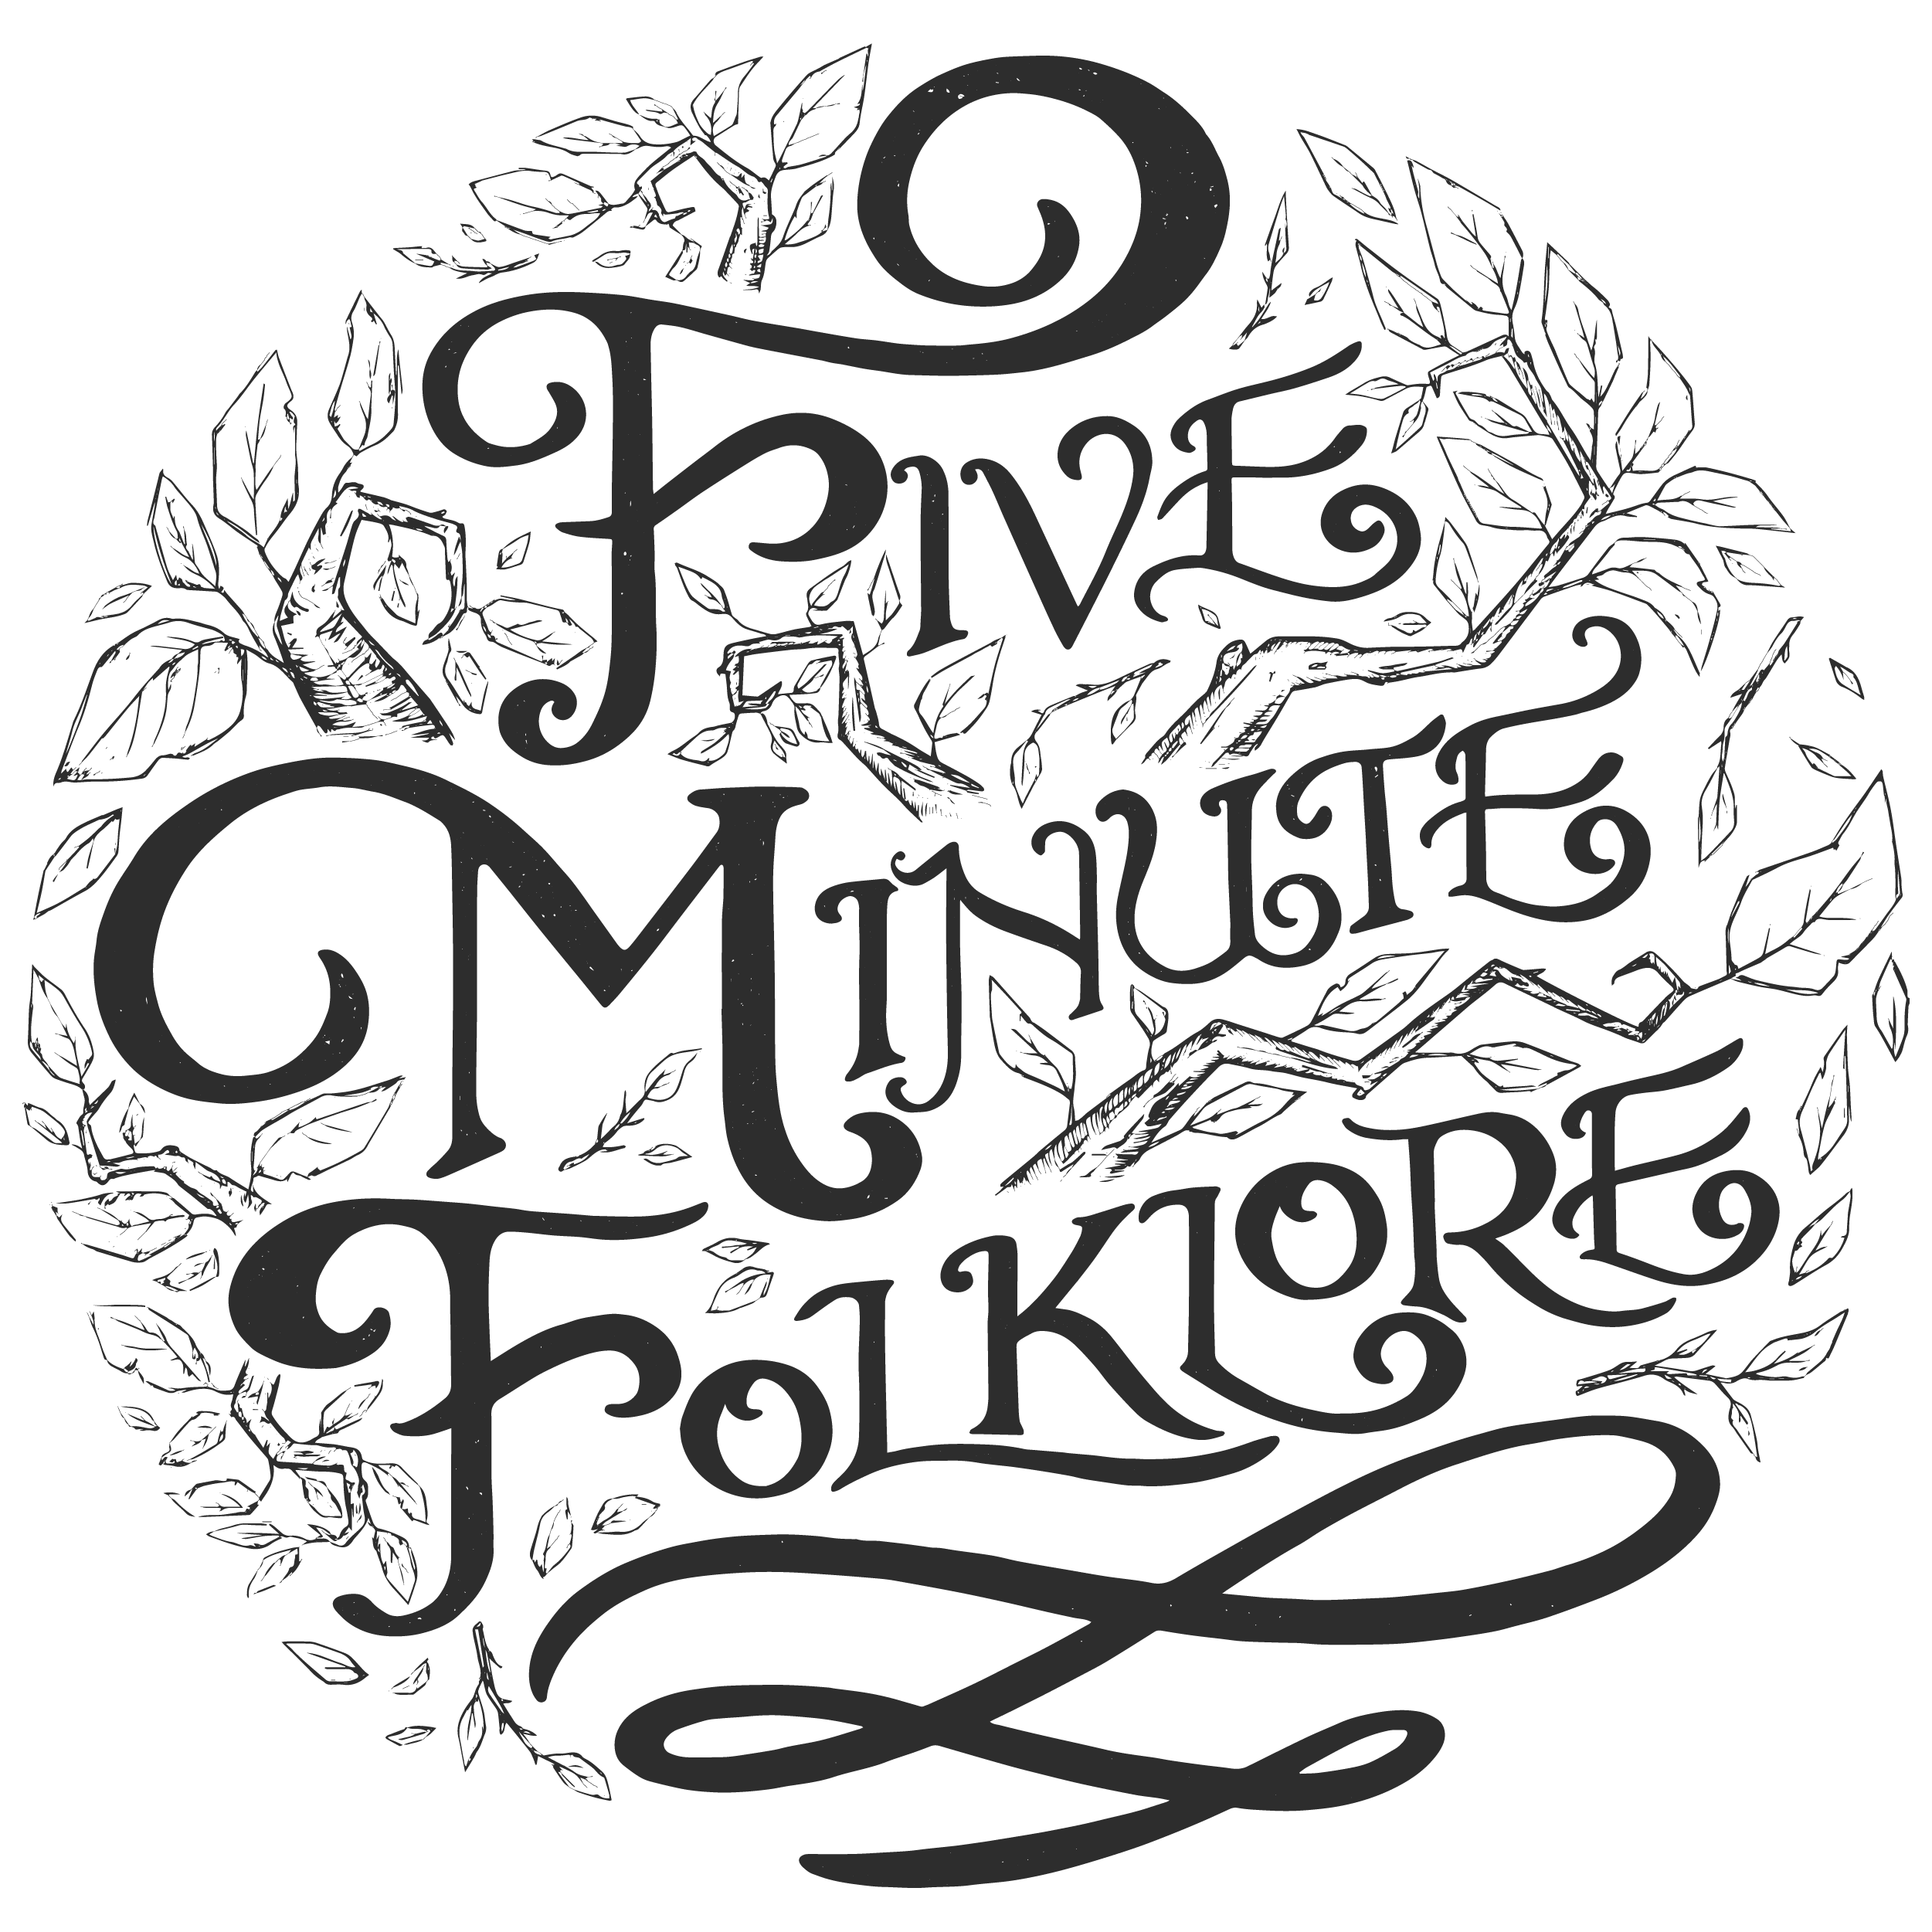 Five Minute Folklore